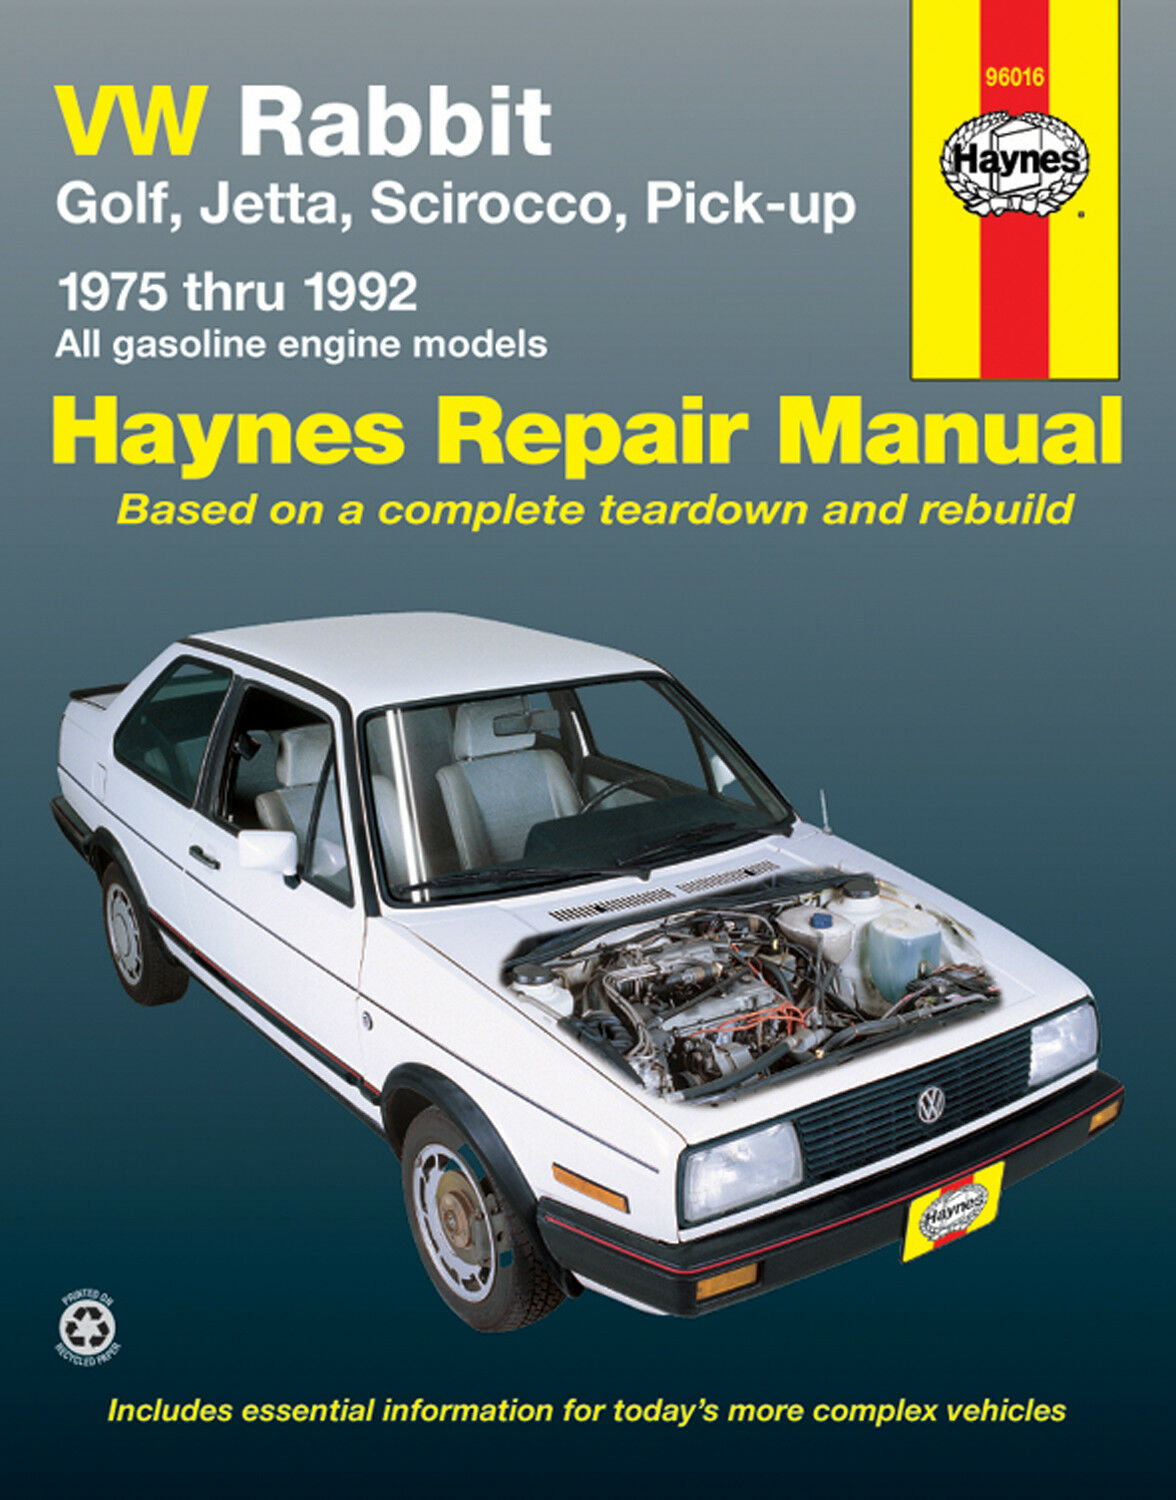 Haynes Publication 96016 VW Rabbit Repair Manual Service Book 1 of 1Only 5  available ...